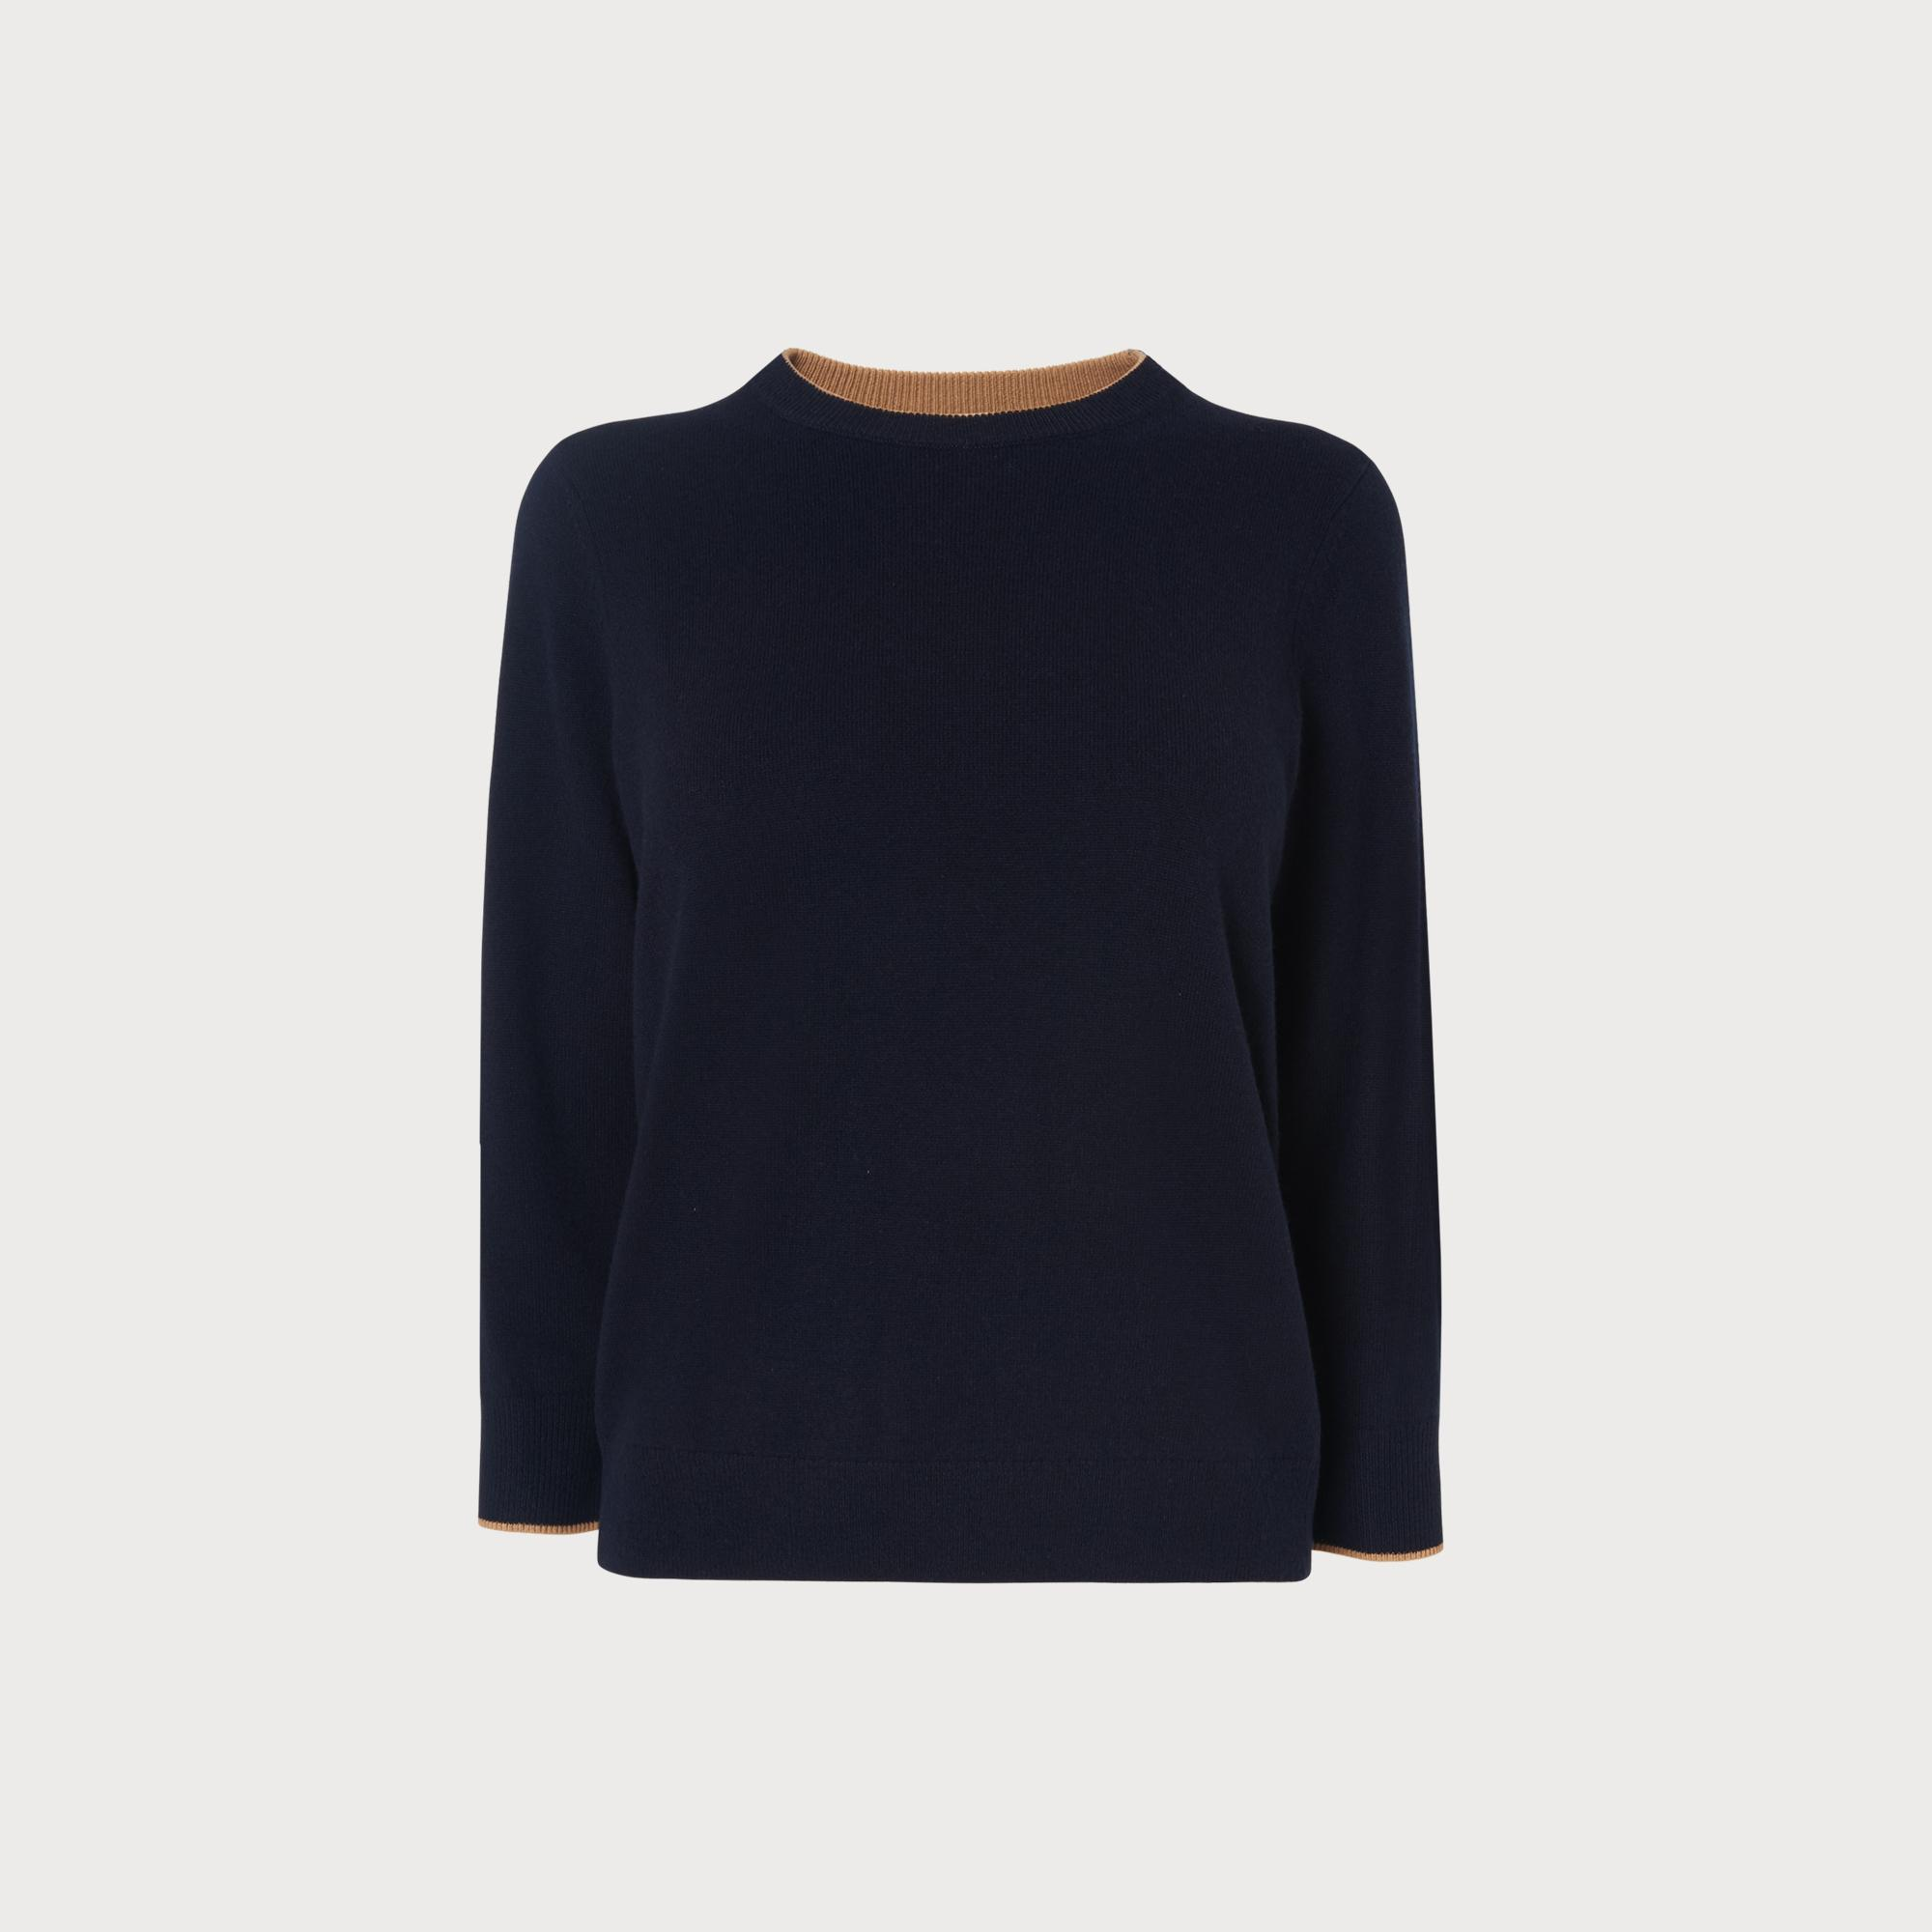 Beatrix Navy Sweater by L.K.Bennett